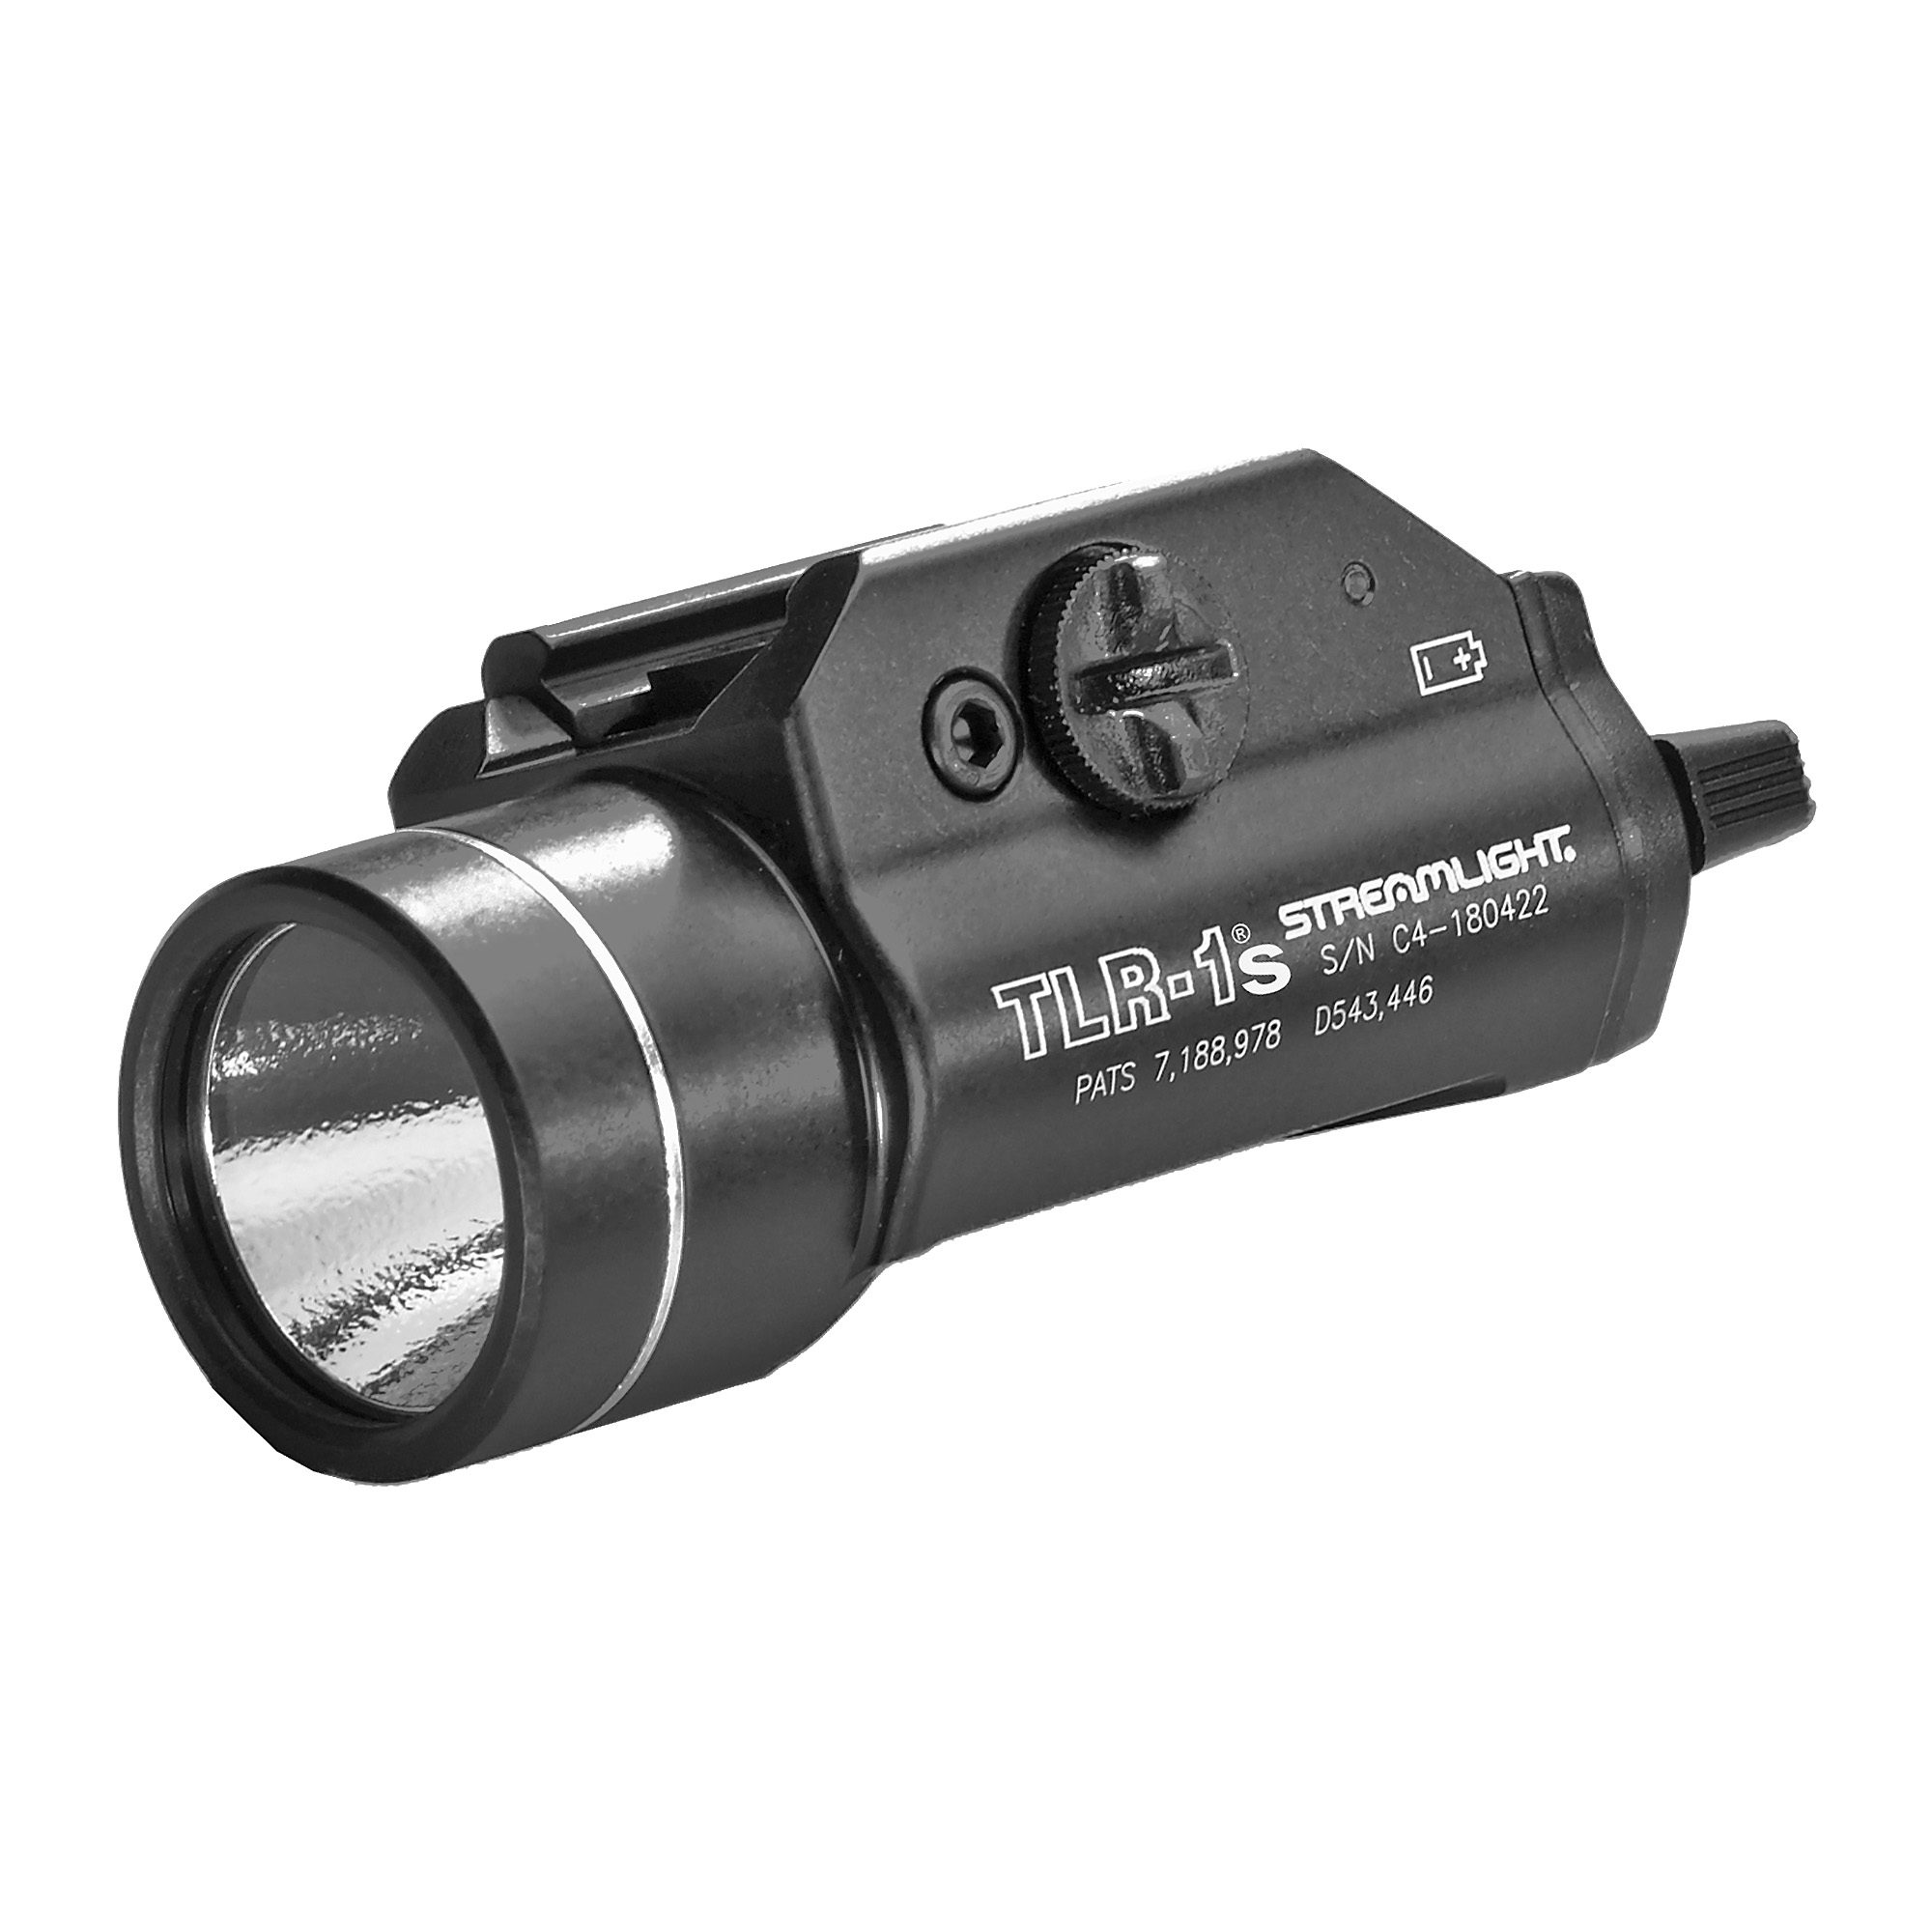 The Streamlight TLR-1 strobe version.